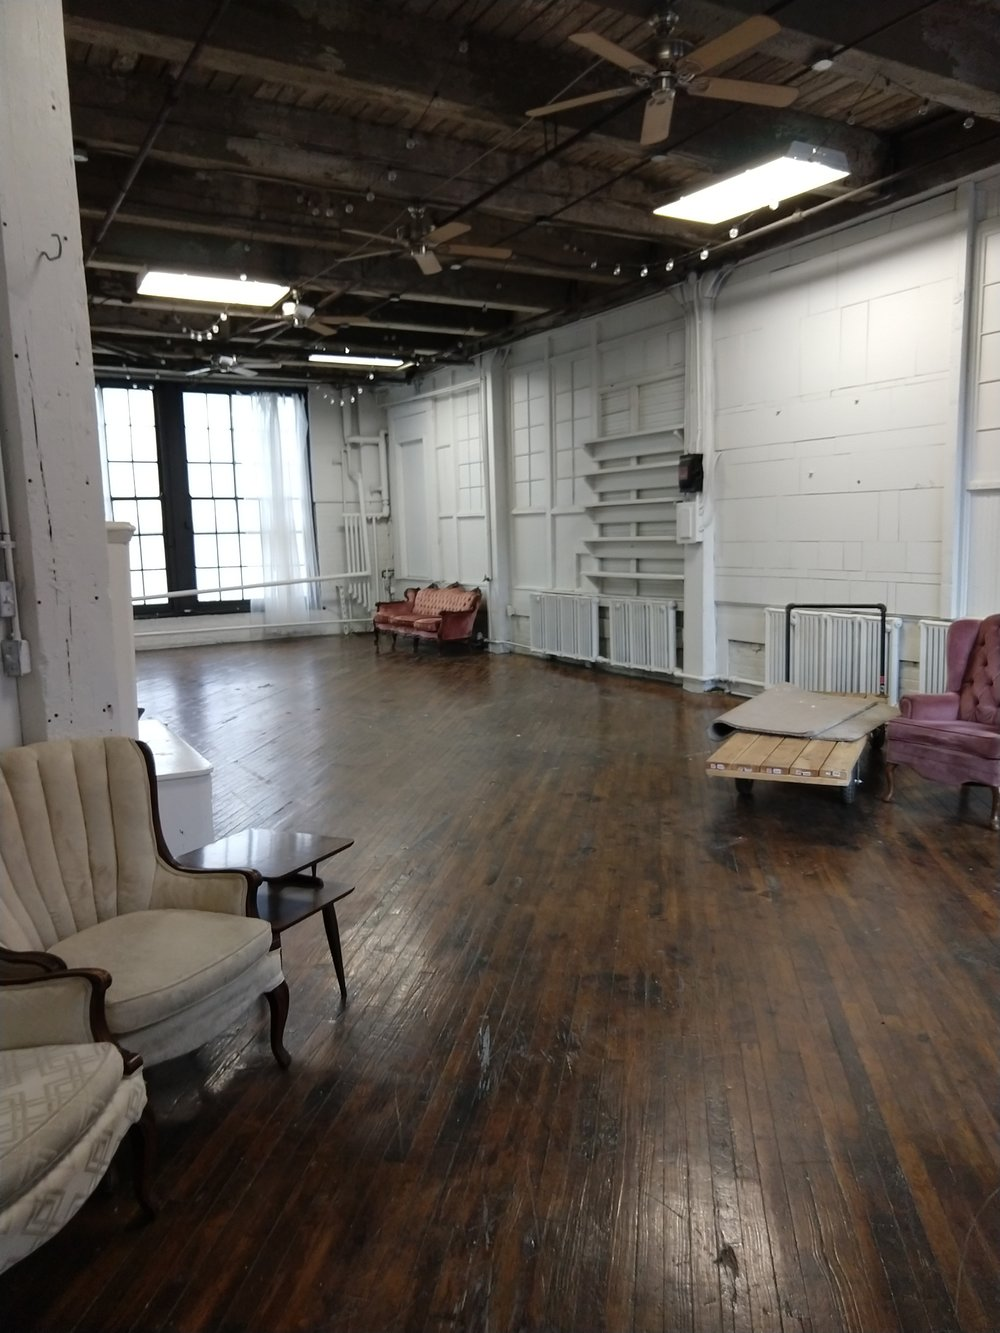 The future studio! Alas, it does not come with the furniture…